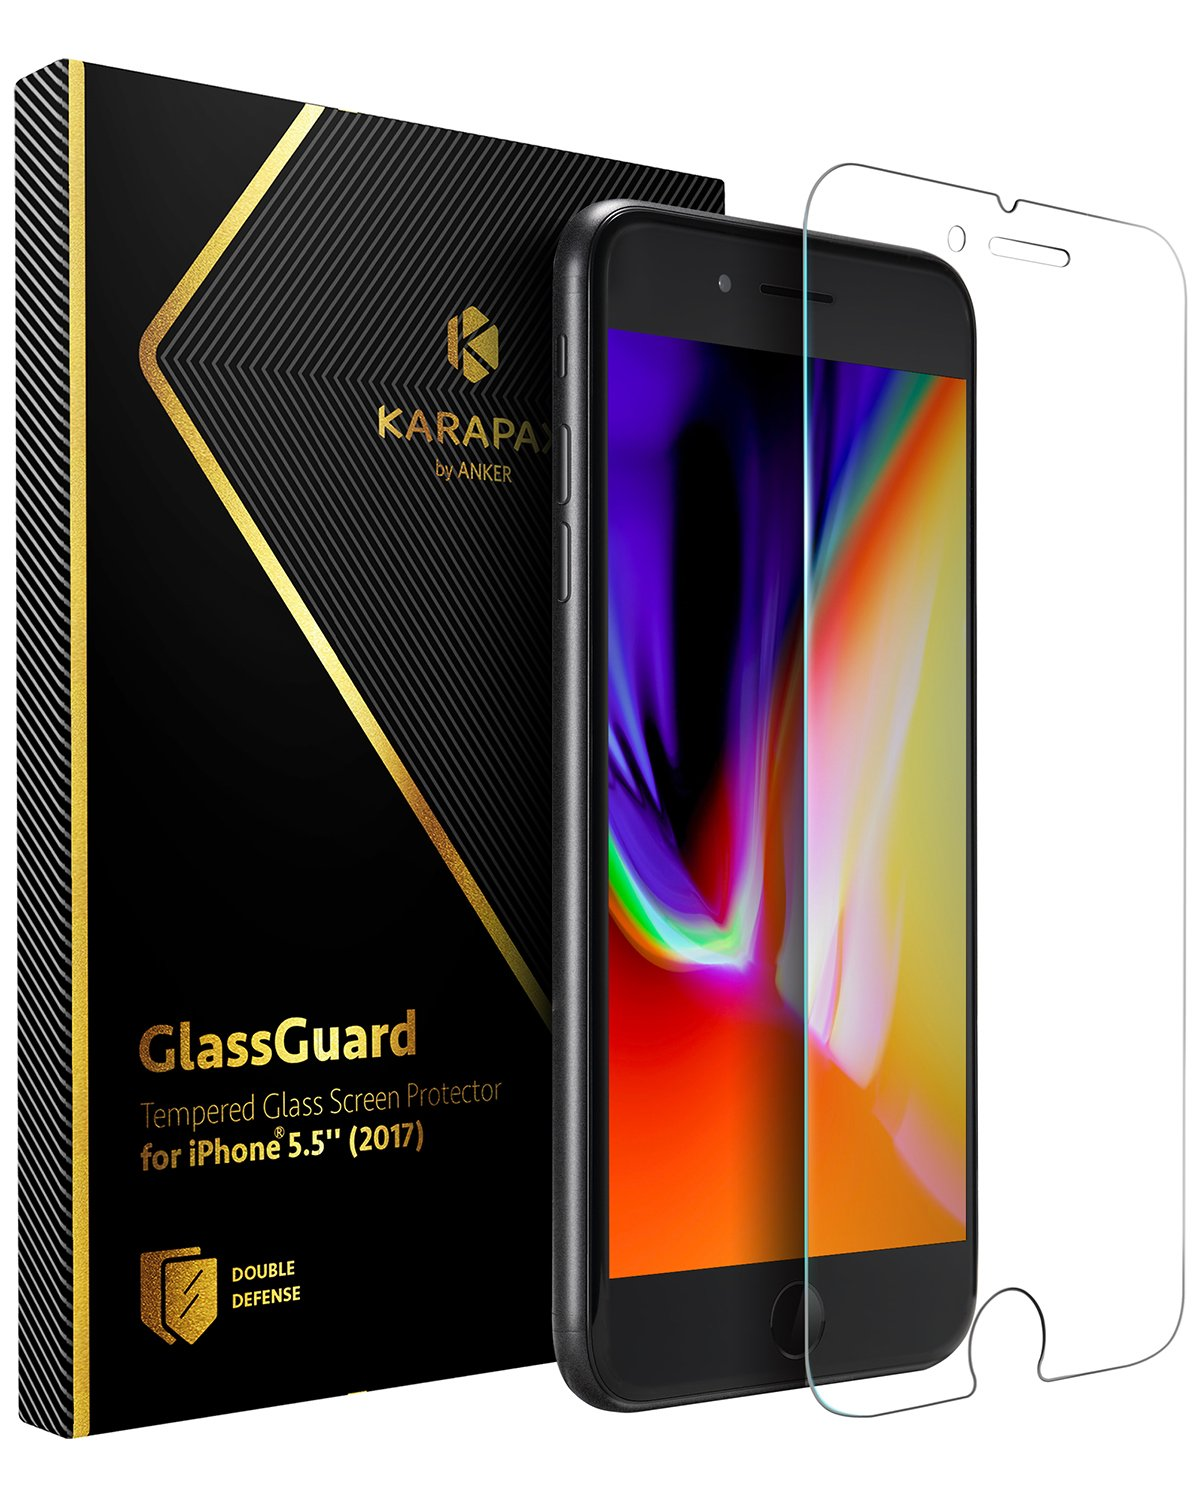 Anker KARAPAX GlassGuard iPhone 8 Plus / 7 Plus 用